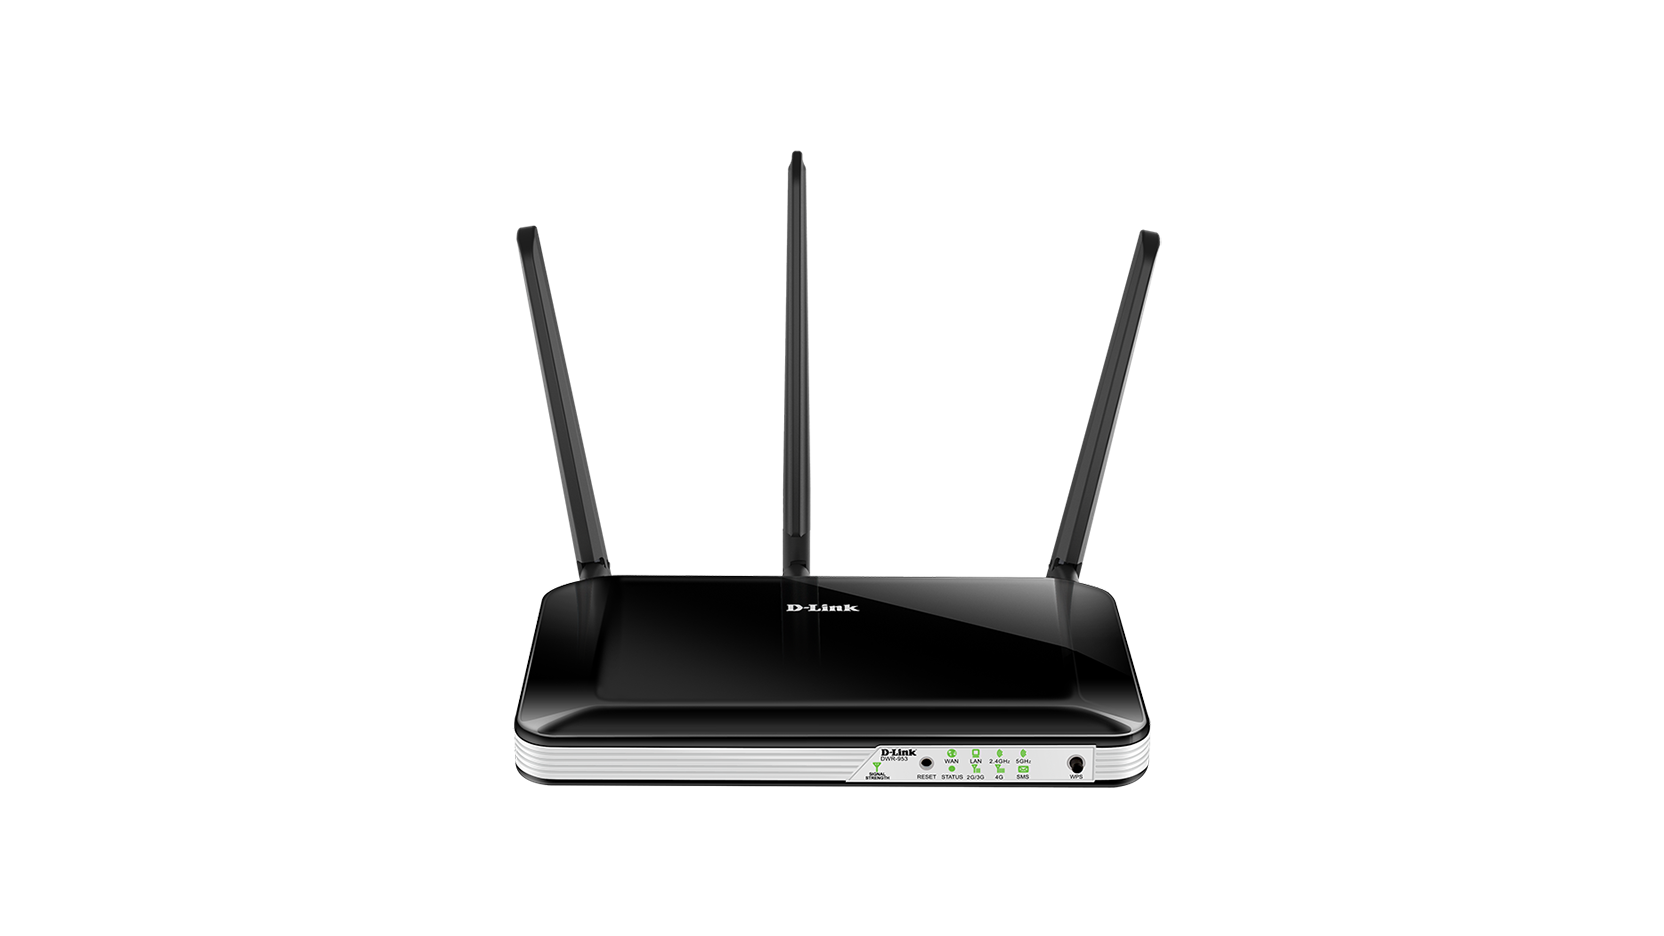 d link s latest router keeps the smart home connected even when broadband fails d link uk. Black Bedroom Furniture Sets. Home Design Ideas